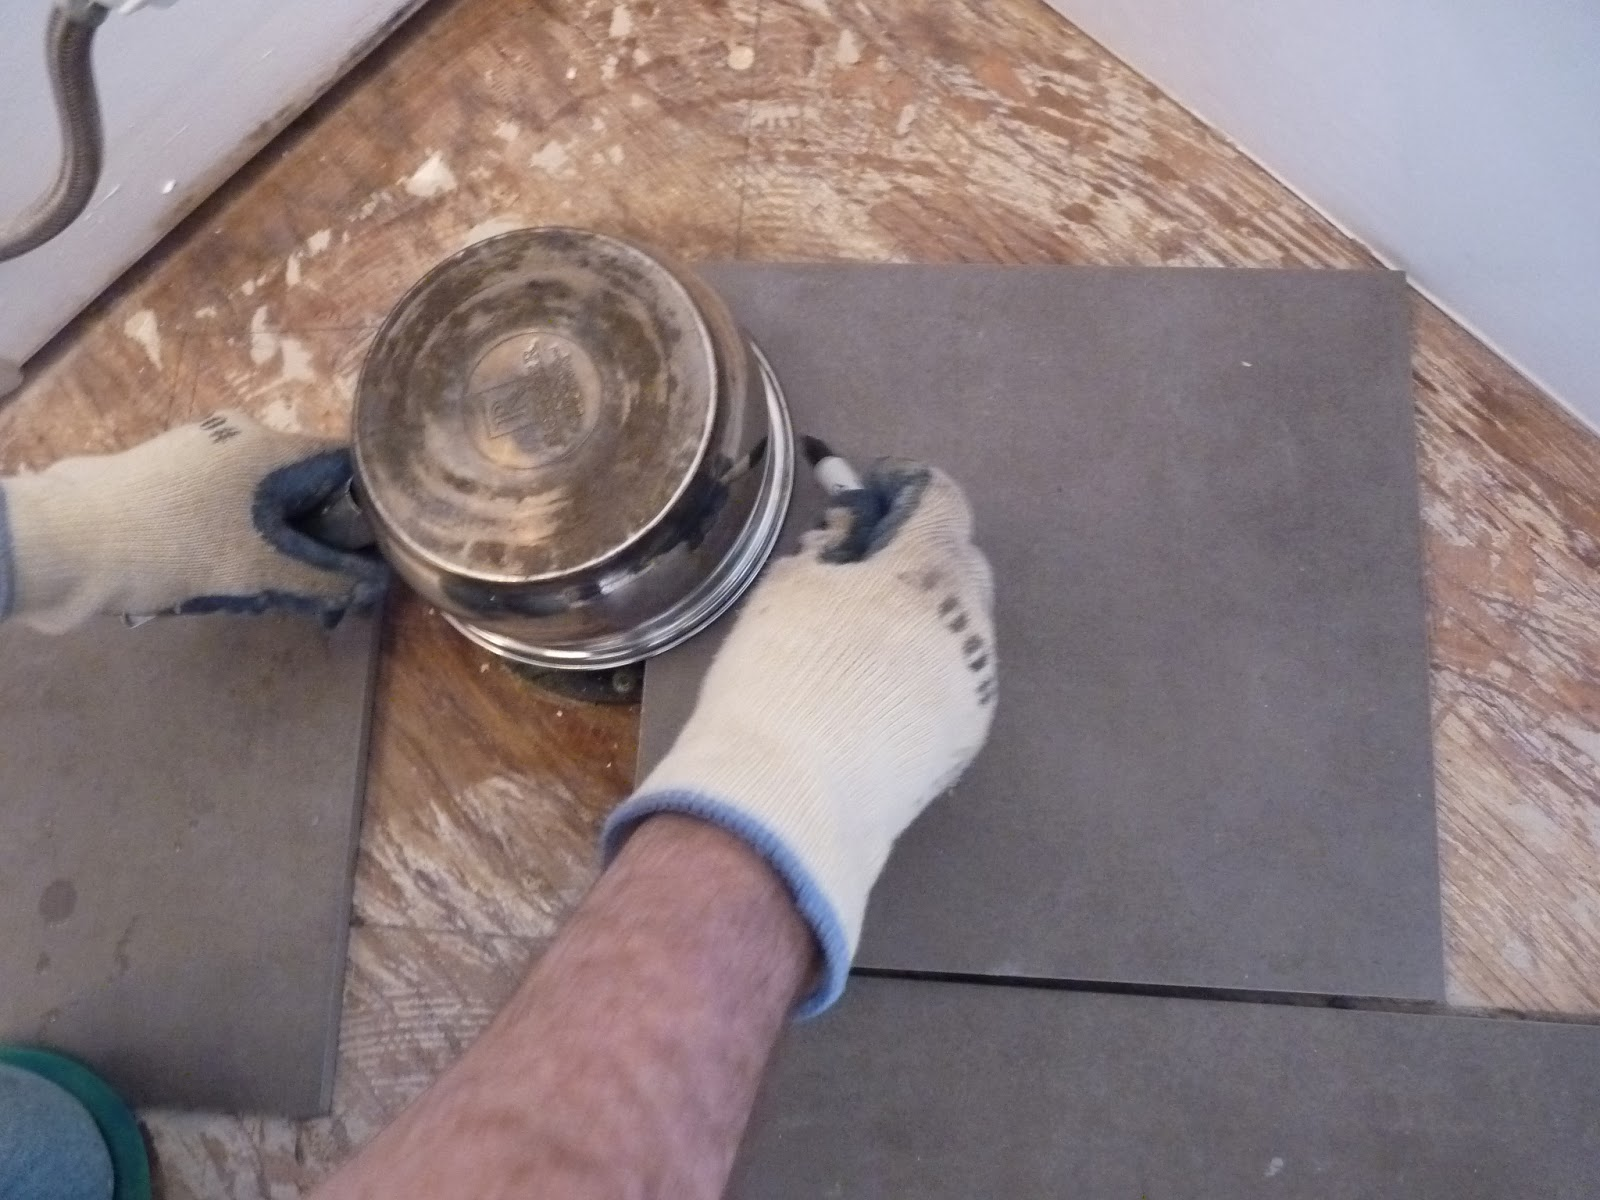 D i y d e s i g n how to install a herringbone tile floor using a wet tile saw make a cut in the center of the curve beginning at the edge of the tile and ending at the inside edge of the curve dailygadgetfo Gallery